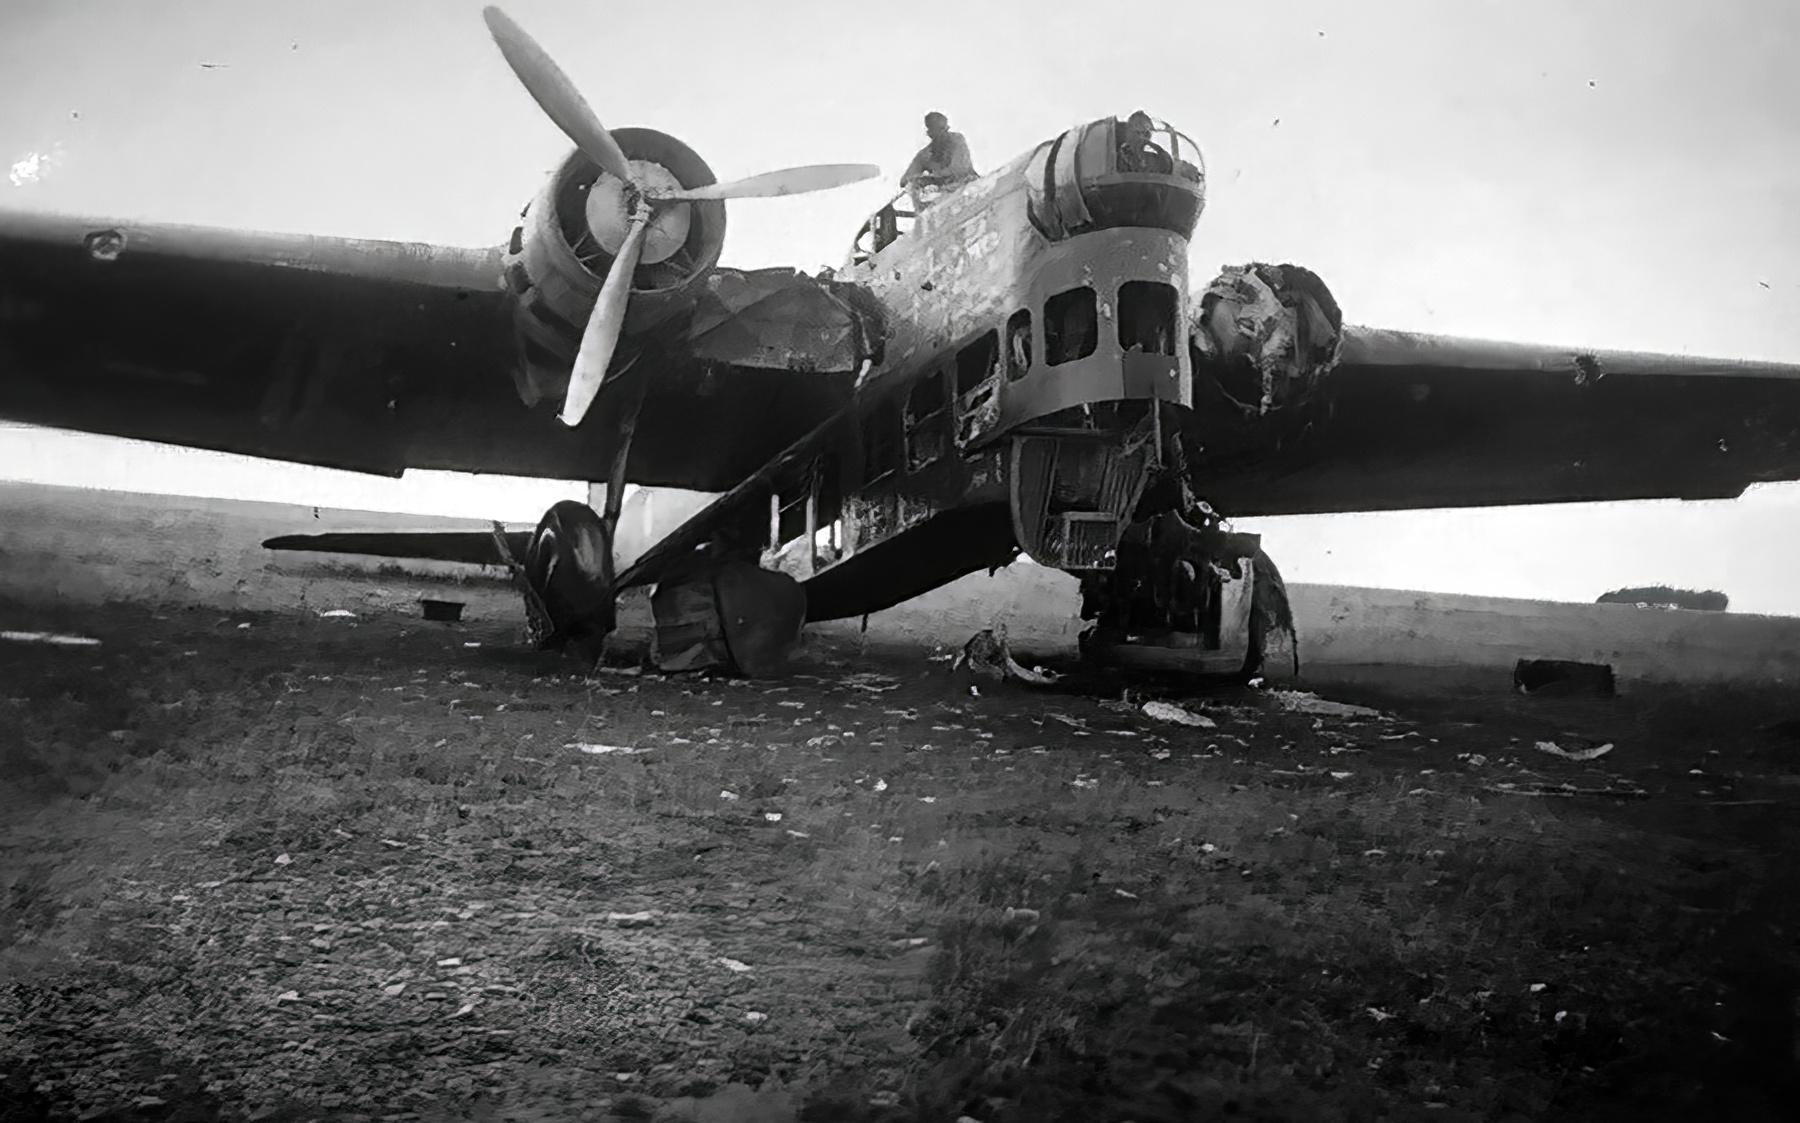 French Airforce Amiot 143 destroyed whilst grounded battle of France May Jun 1940 ebay 01